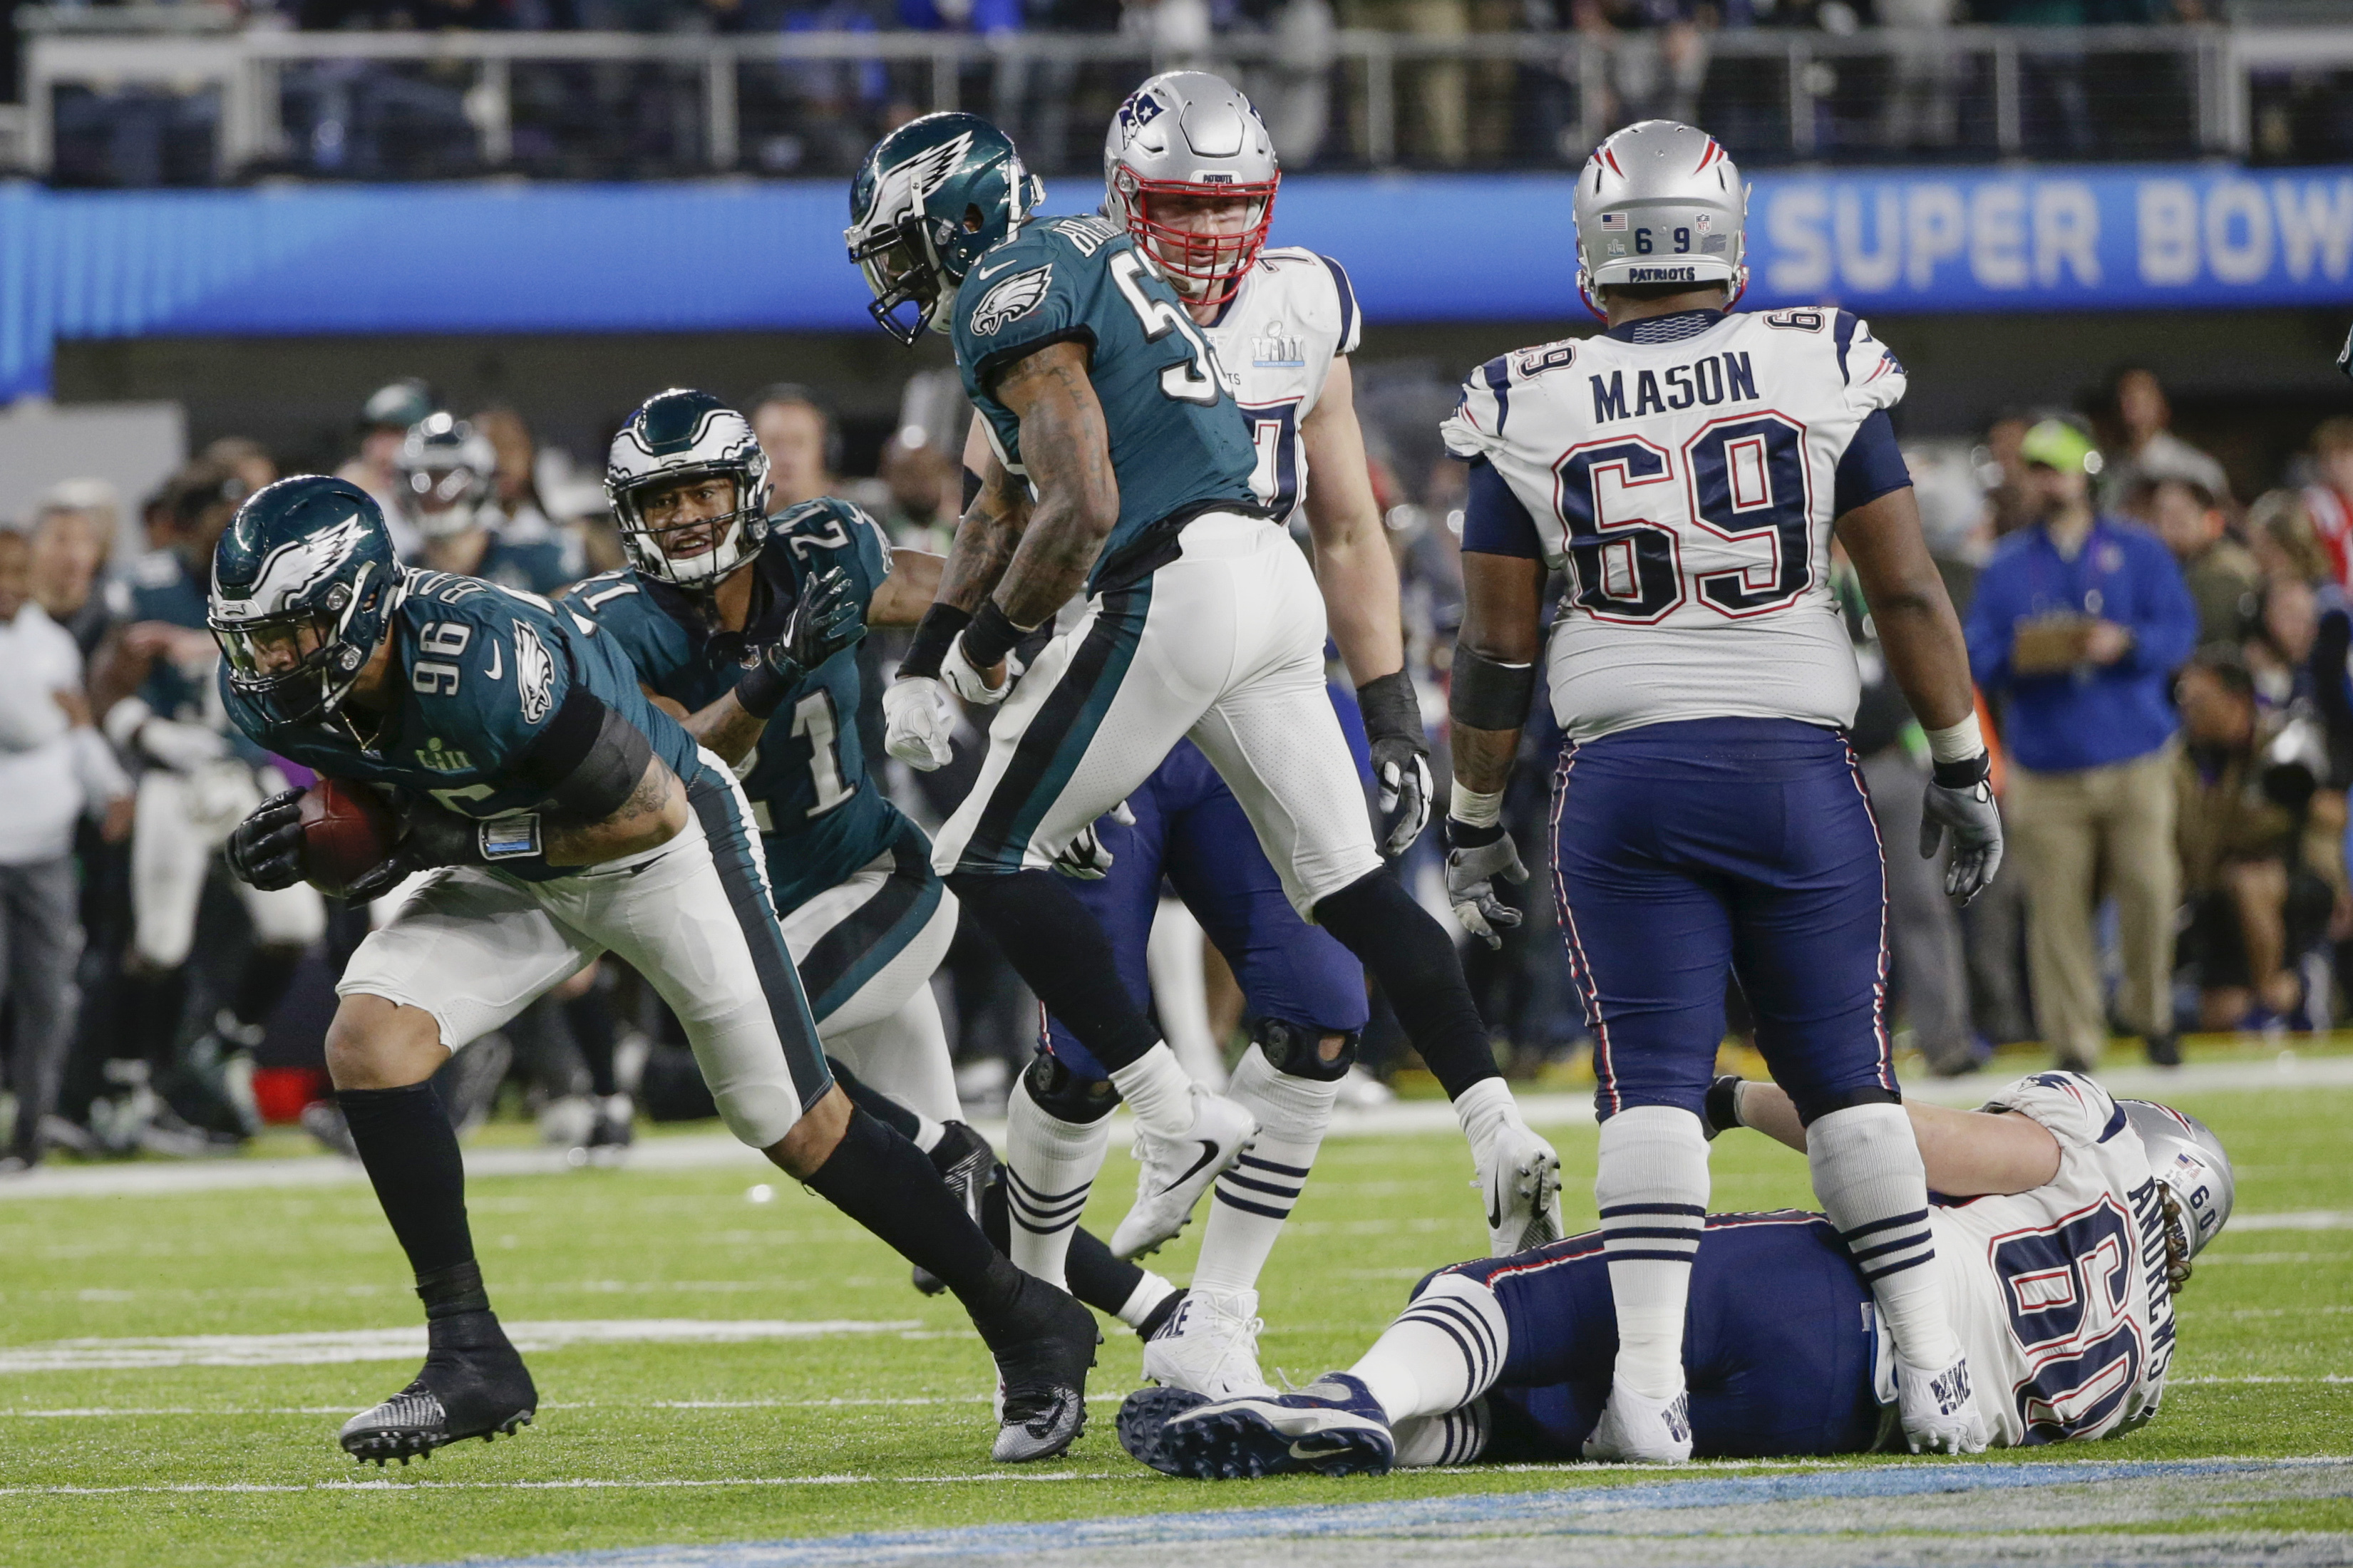 "<div class=""meta image-caption""><div class=""origin-logo origin-image ap""><span>AP</span></div><span class=""caption-text"">Philadelphia Eagles defensive end Derek Barnett (96) recovers a fumble by New England Patriots quarterback Tom Brady, during the second half. (AP Photo/Tony Gutierrez)</span></div>"